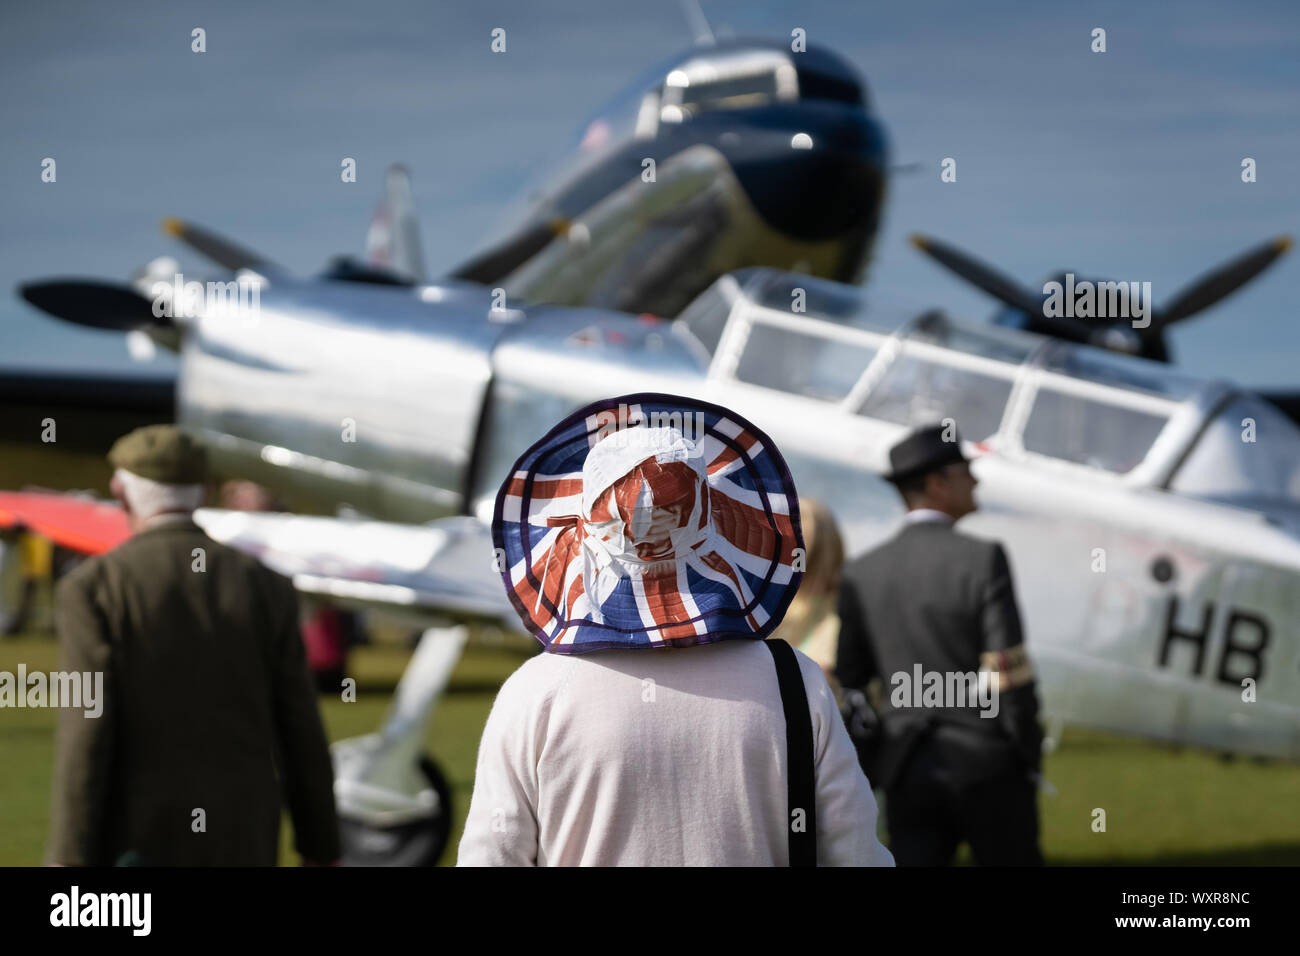 Vintage aircraft on display at Goodwood Revival, Britain's greatest annual classic car show, West sussex, UK. Stock Photo